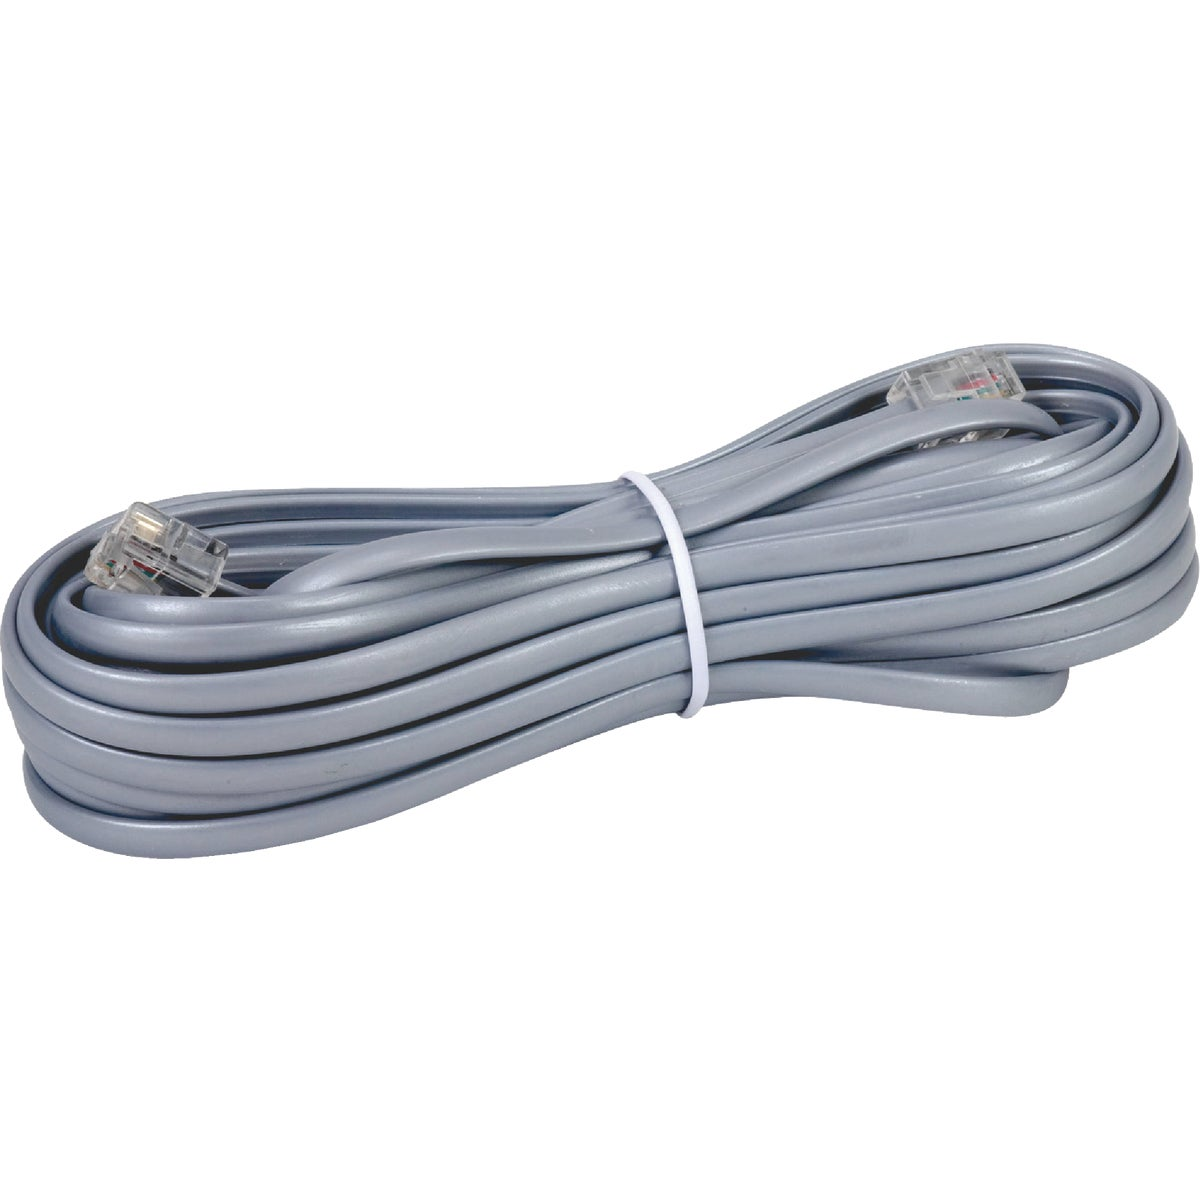 25' GRAY PHONE CORD - TP243SLRV by Audiovox Accessories